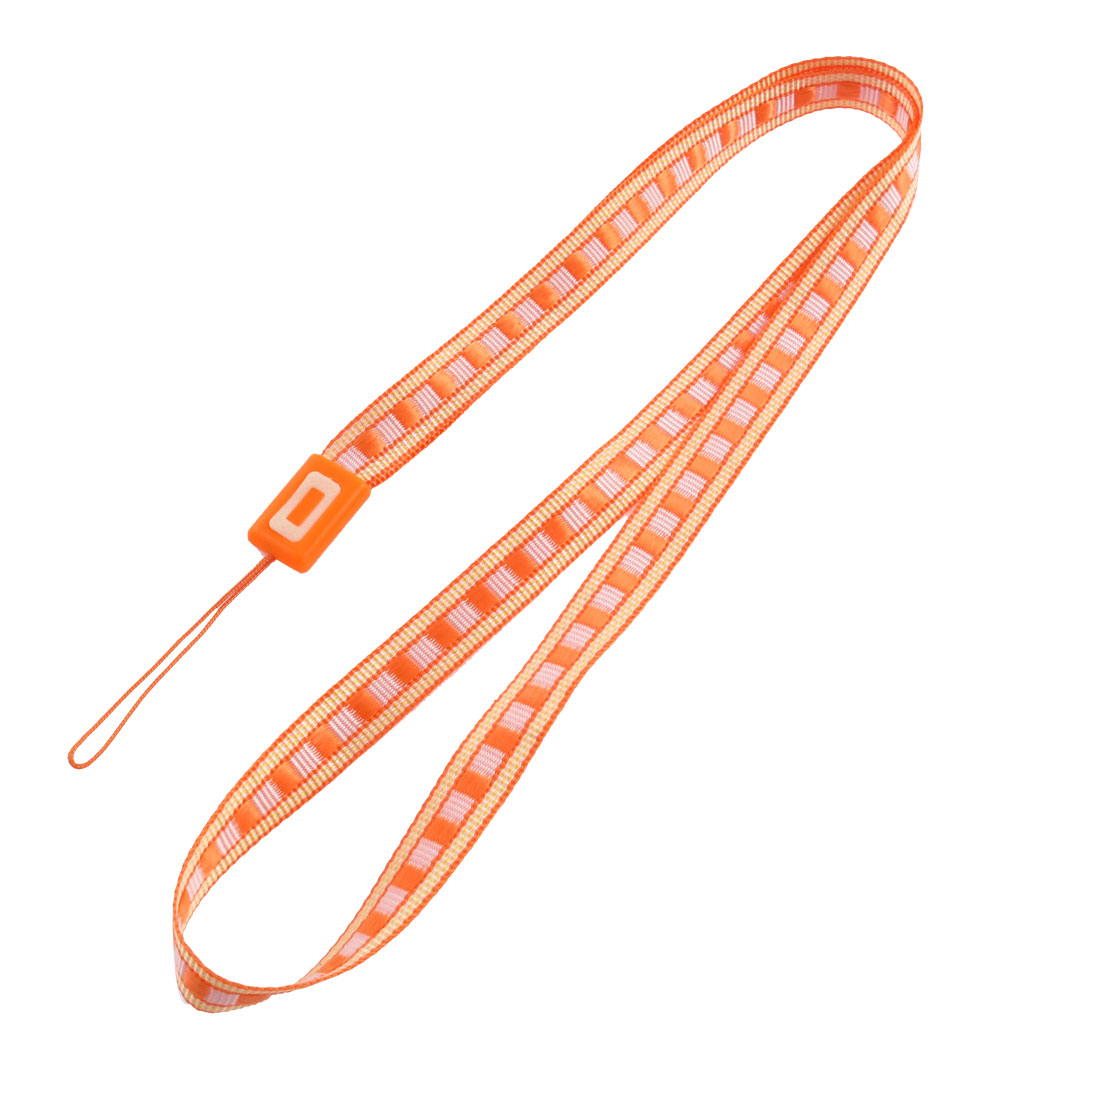 Fabric Plaid Pattern Cellphone MP4 Keyring String Strap Lanyard Orange